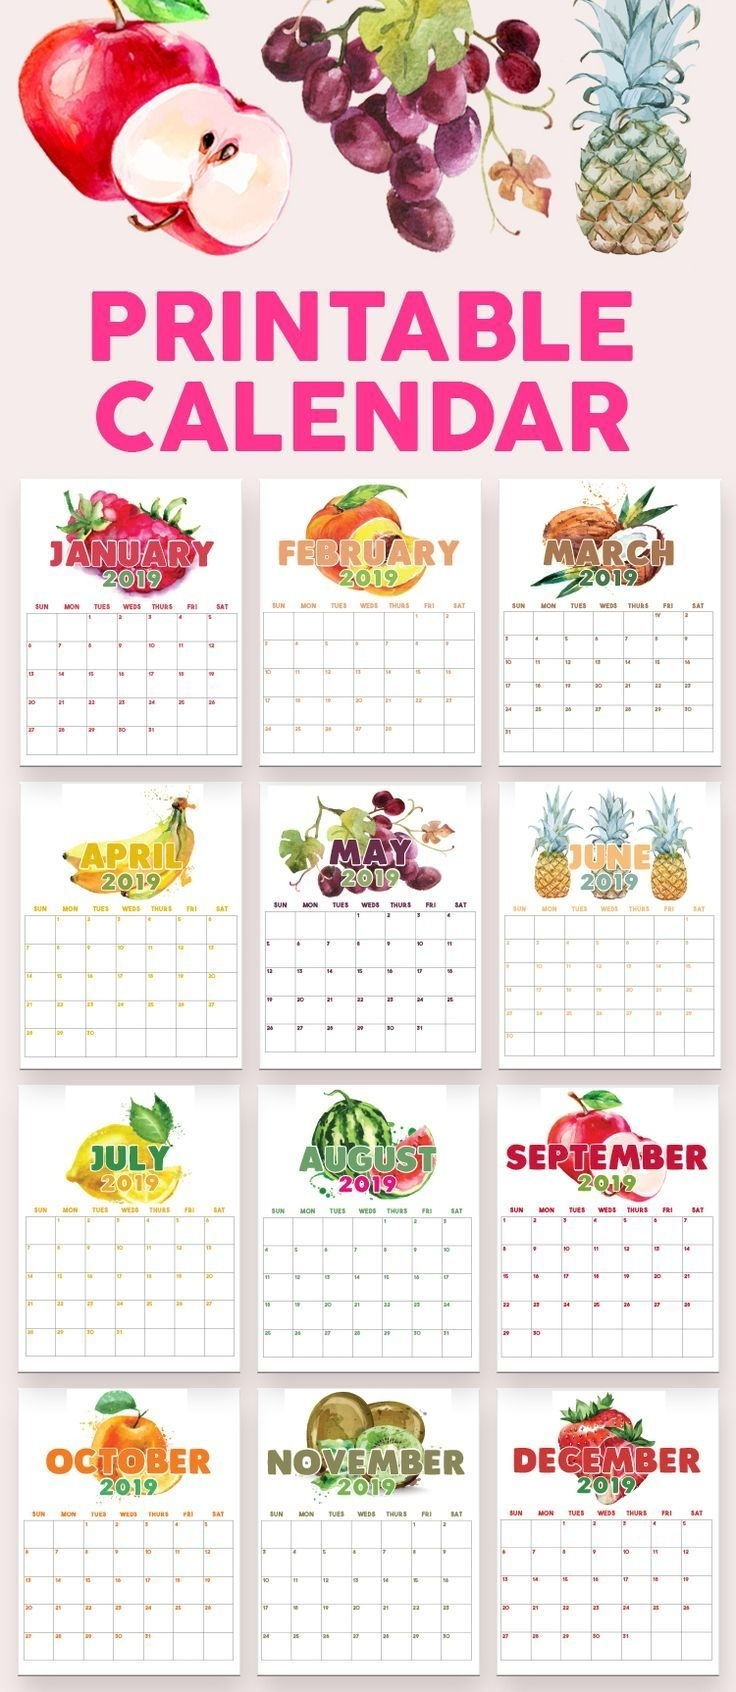 2020 Printable Calendars And Planners | Printables, 2019